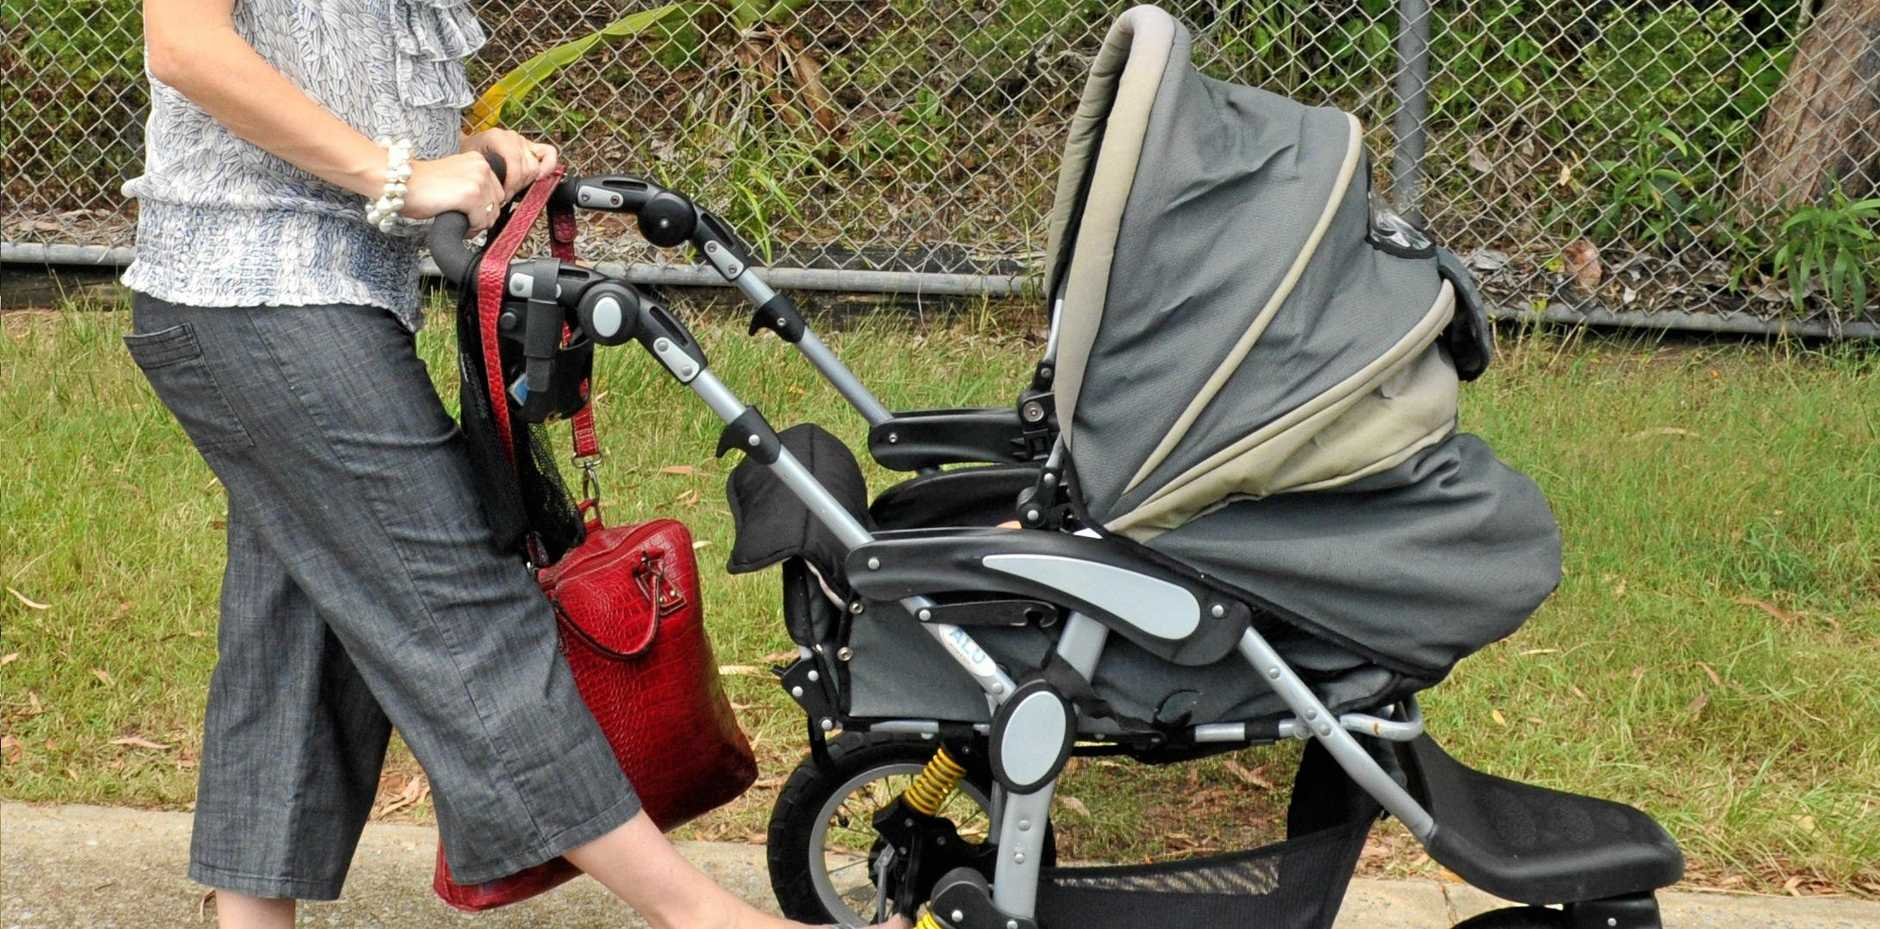 A woman walking with a friends baby in a pram was approached by men behaving erratically.